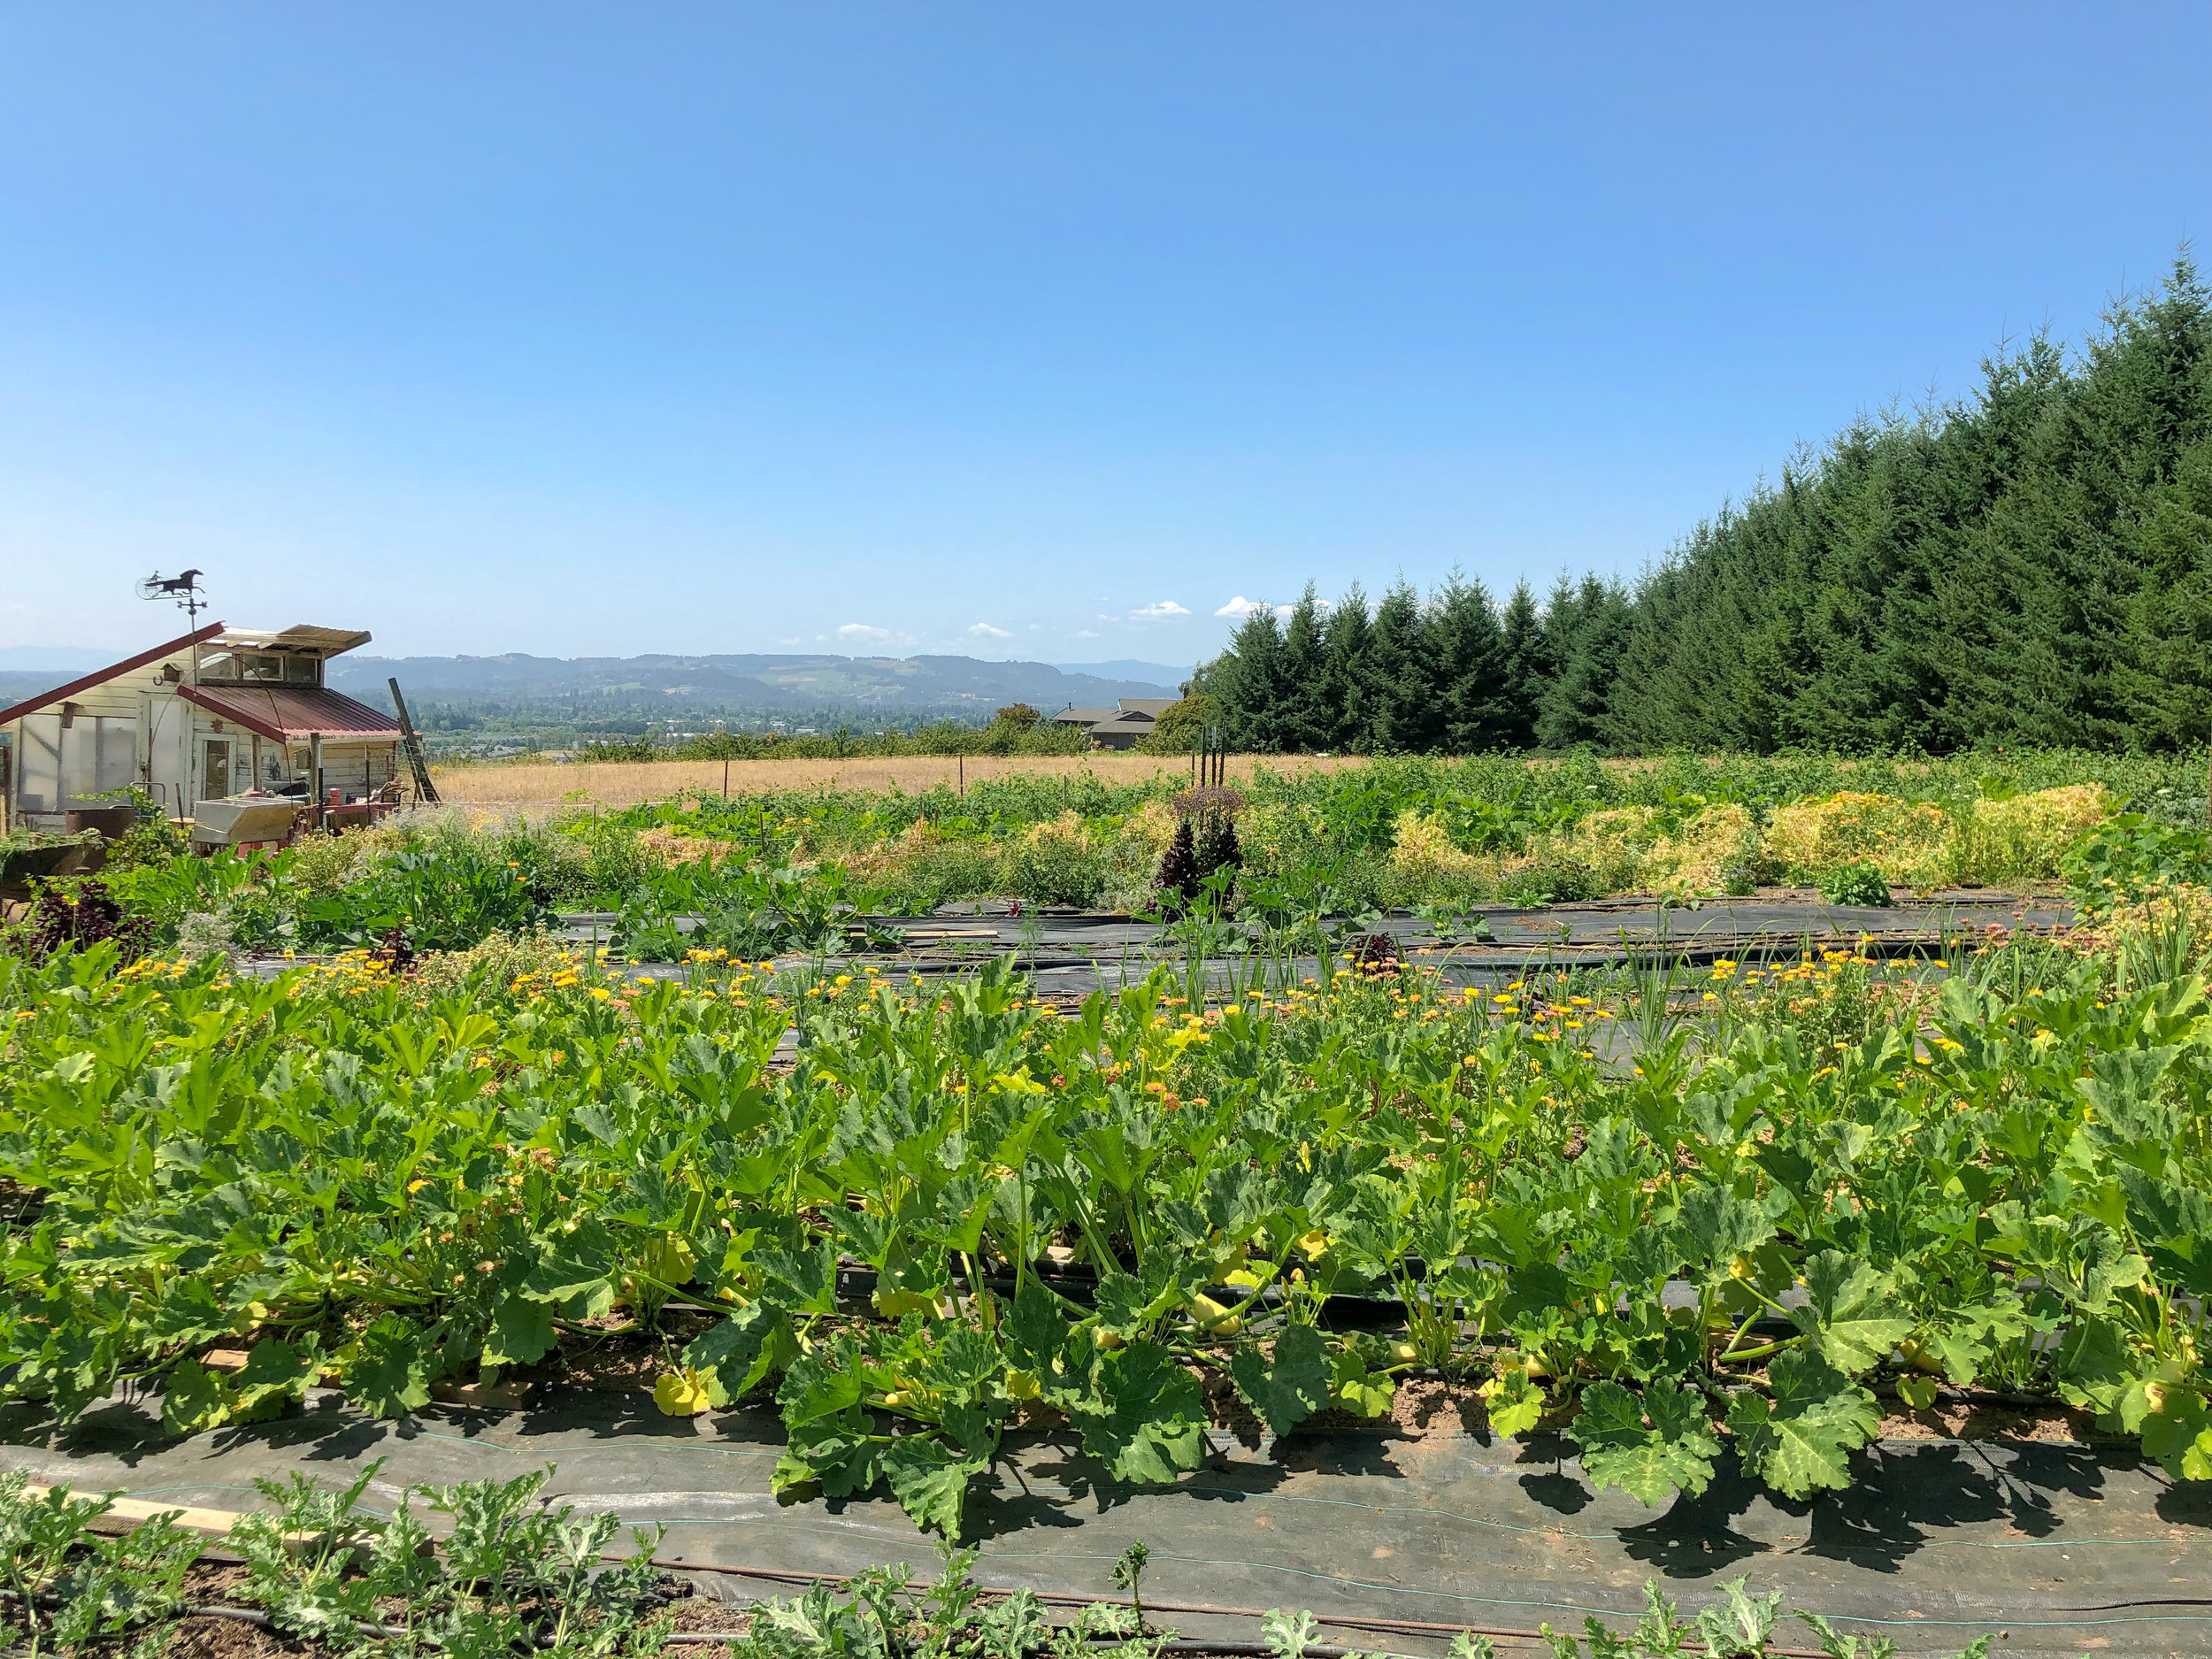 Rows of various vegetables overlooking the city of Newberg.